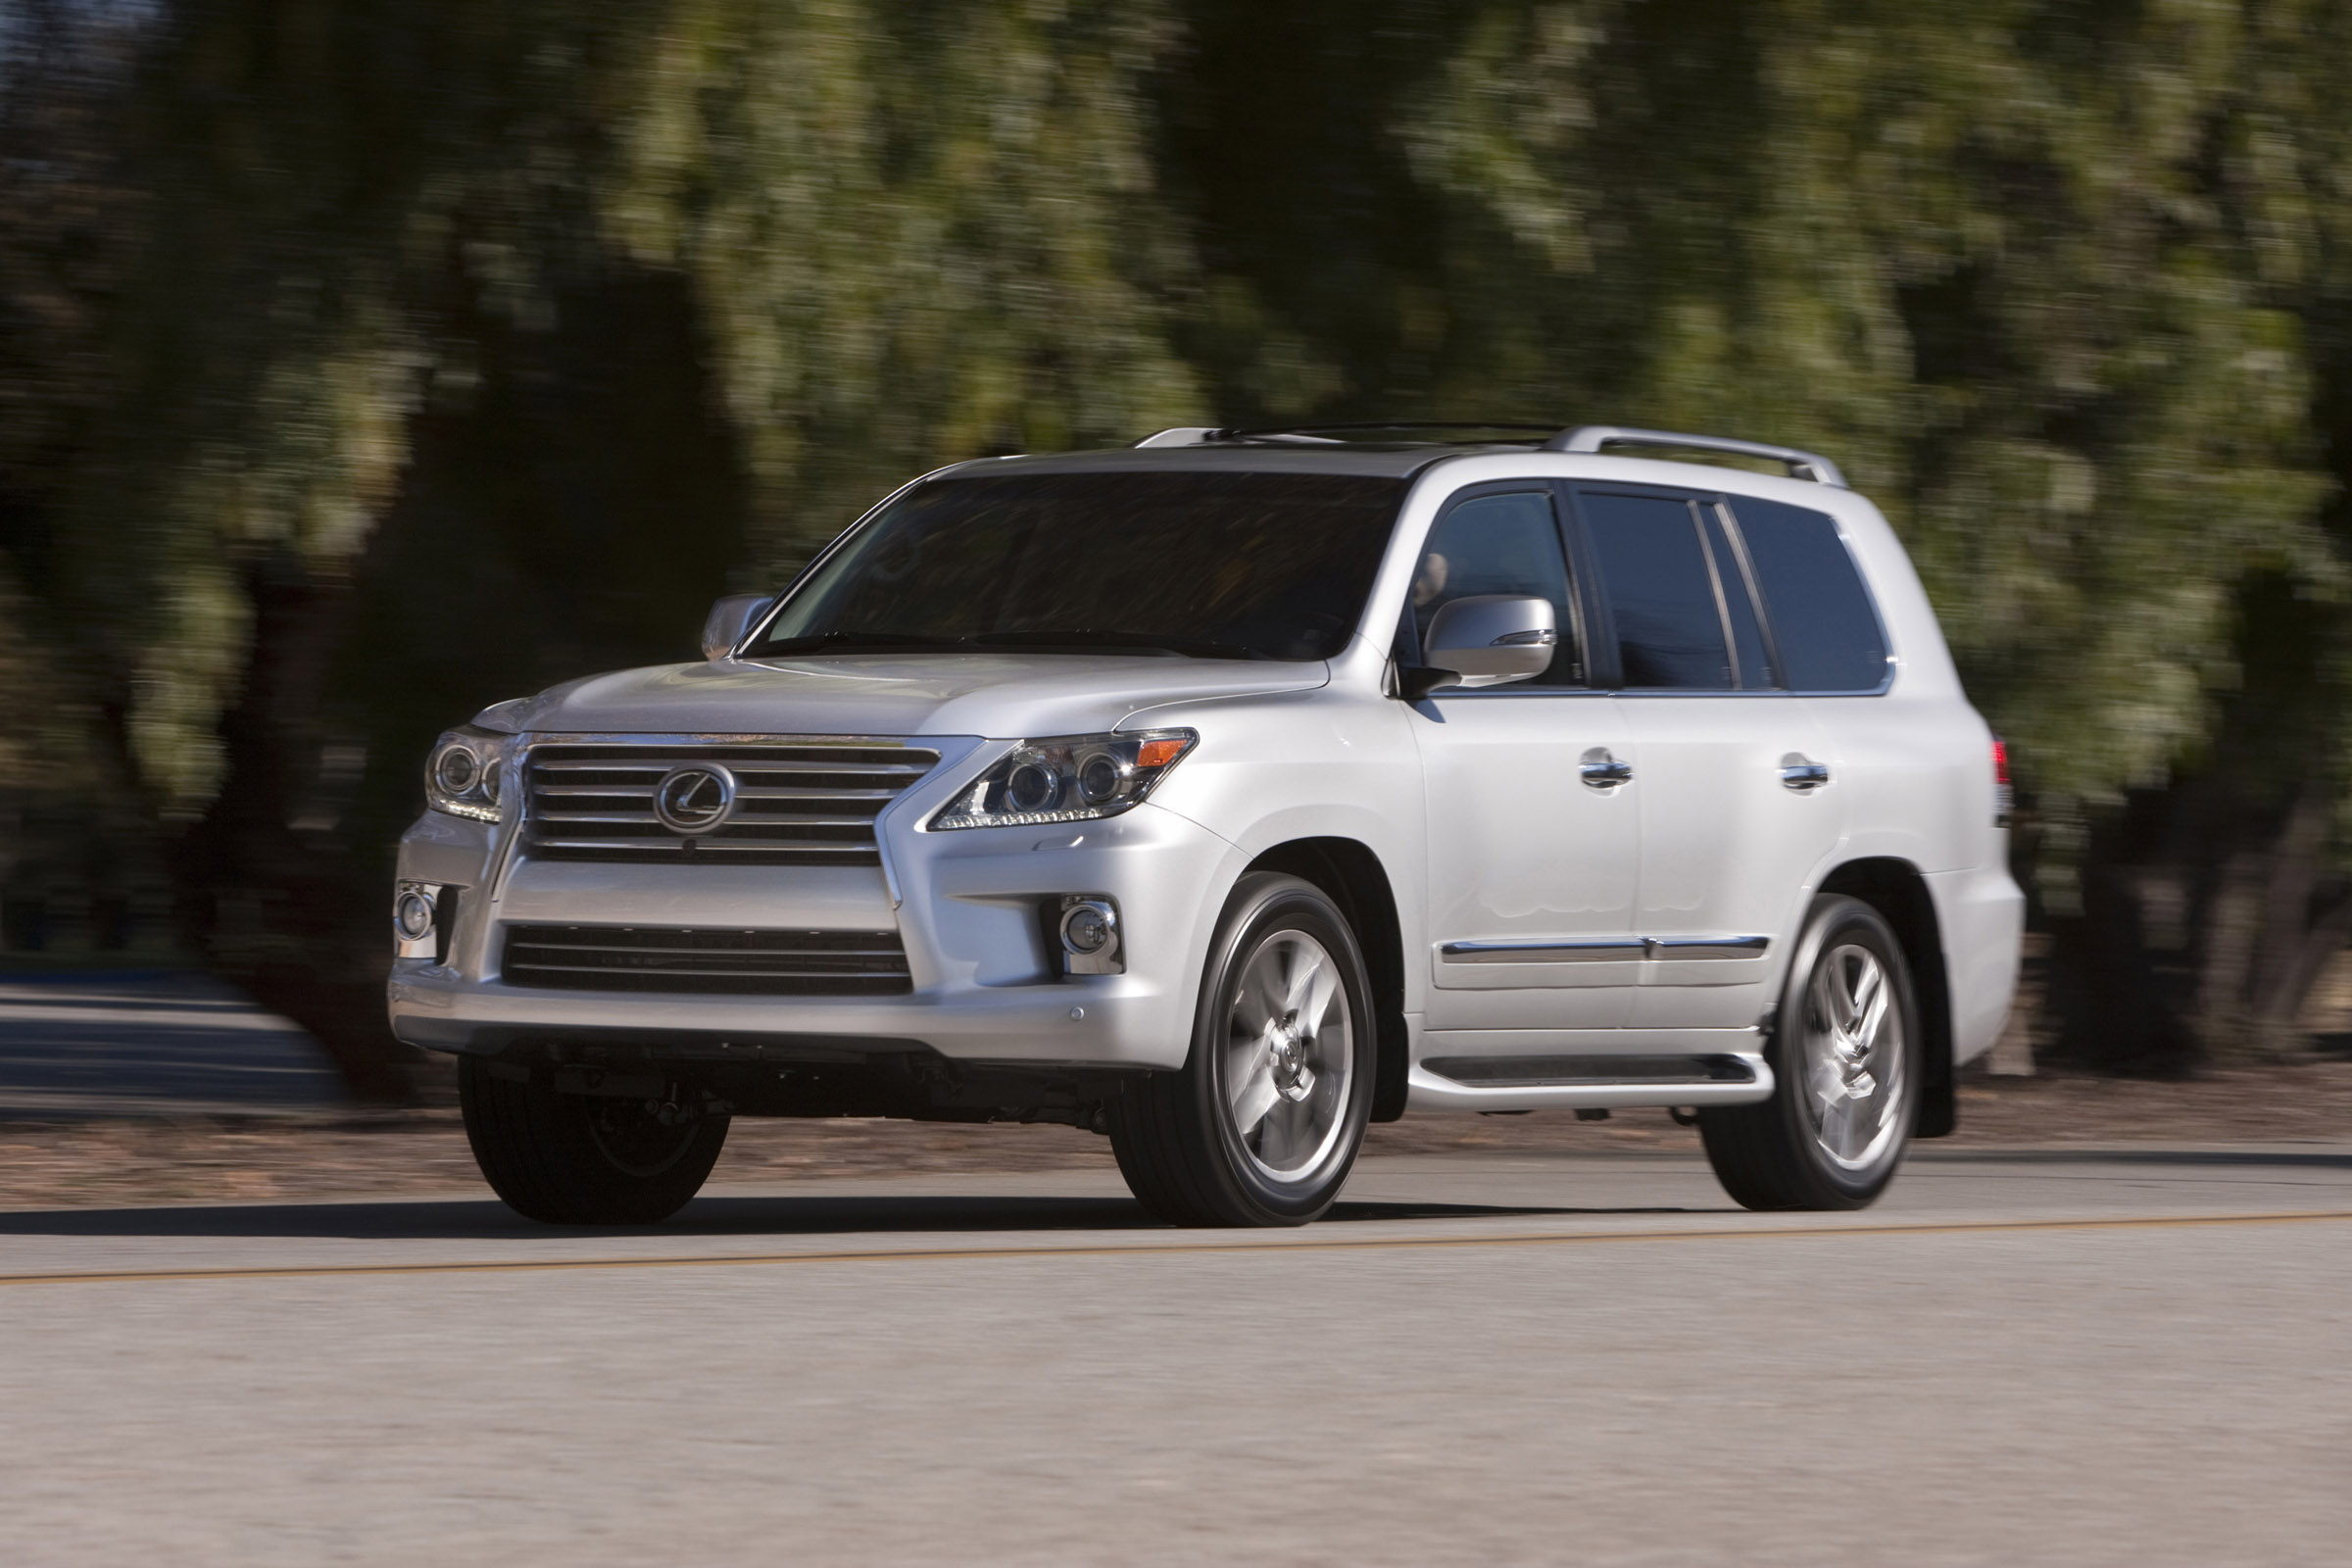 2013 lexus lx 570 suv with new look. Black Bedroom Furniture Sets. Home Design Ideas